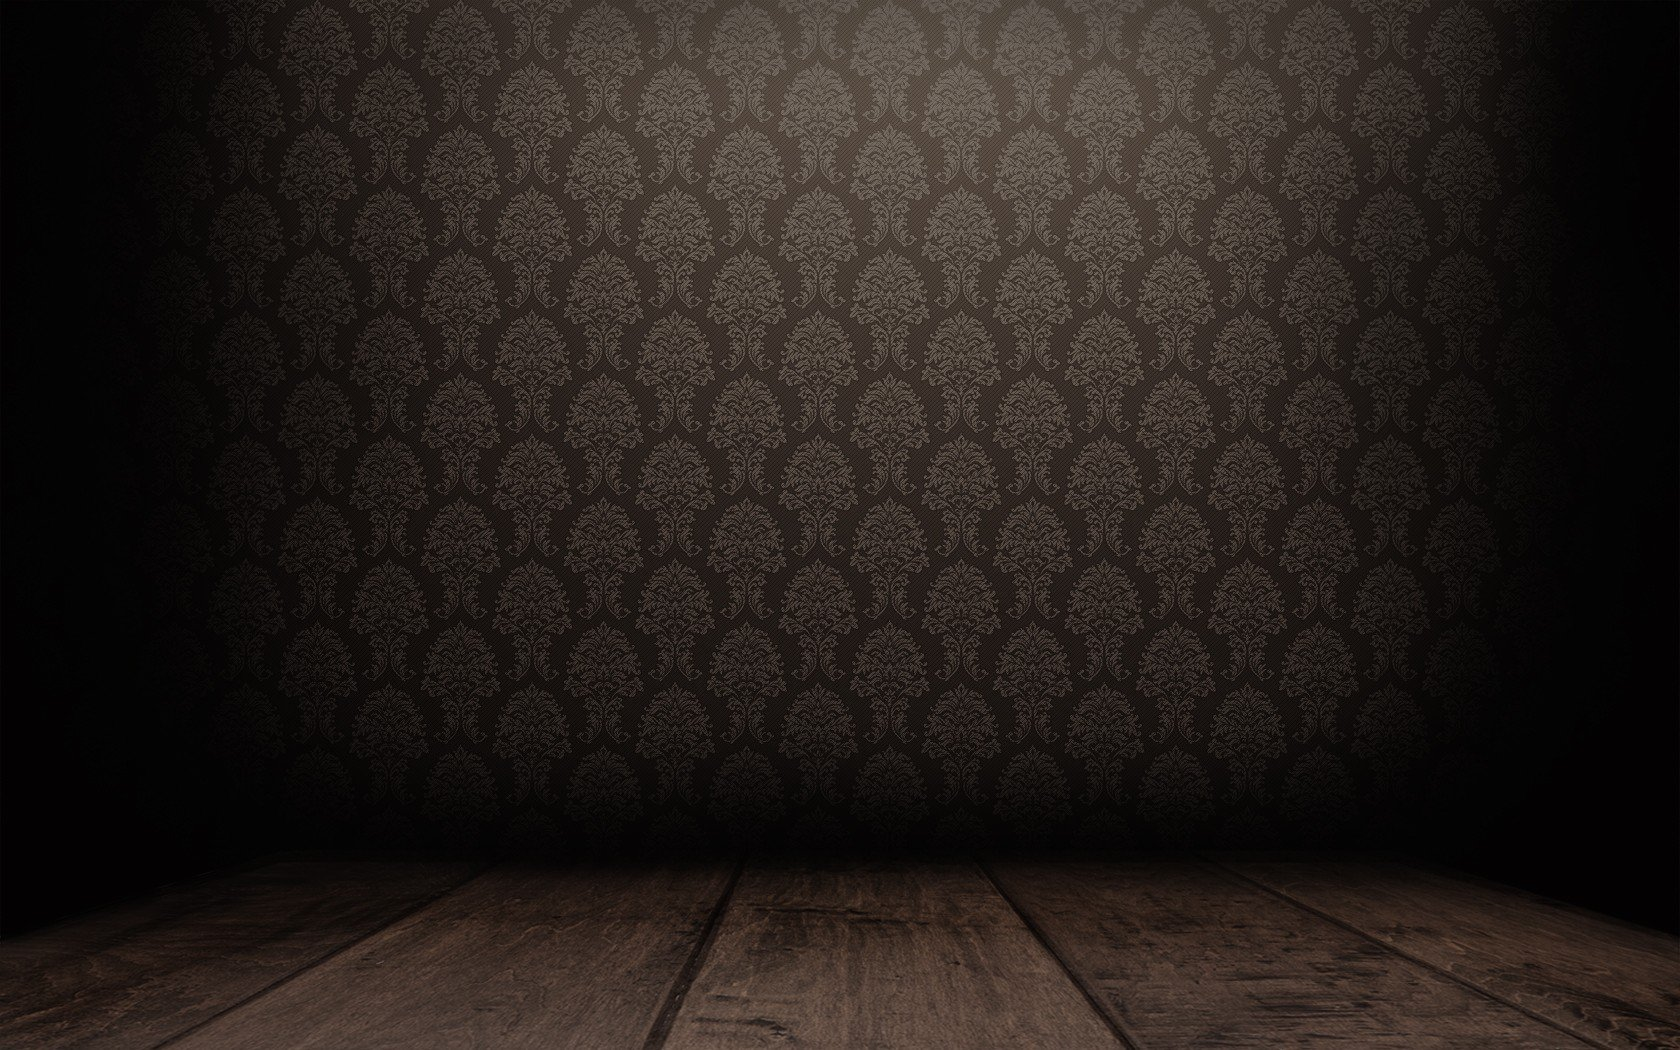 floor patterns brown empty room Dark Tranquillity backgrounds darker 1680x1050